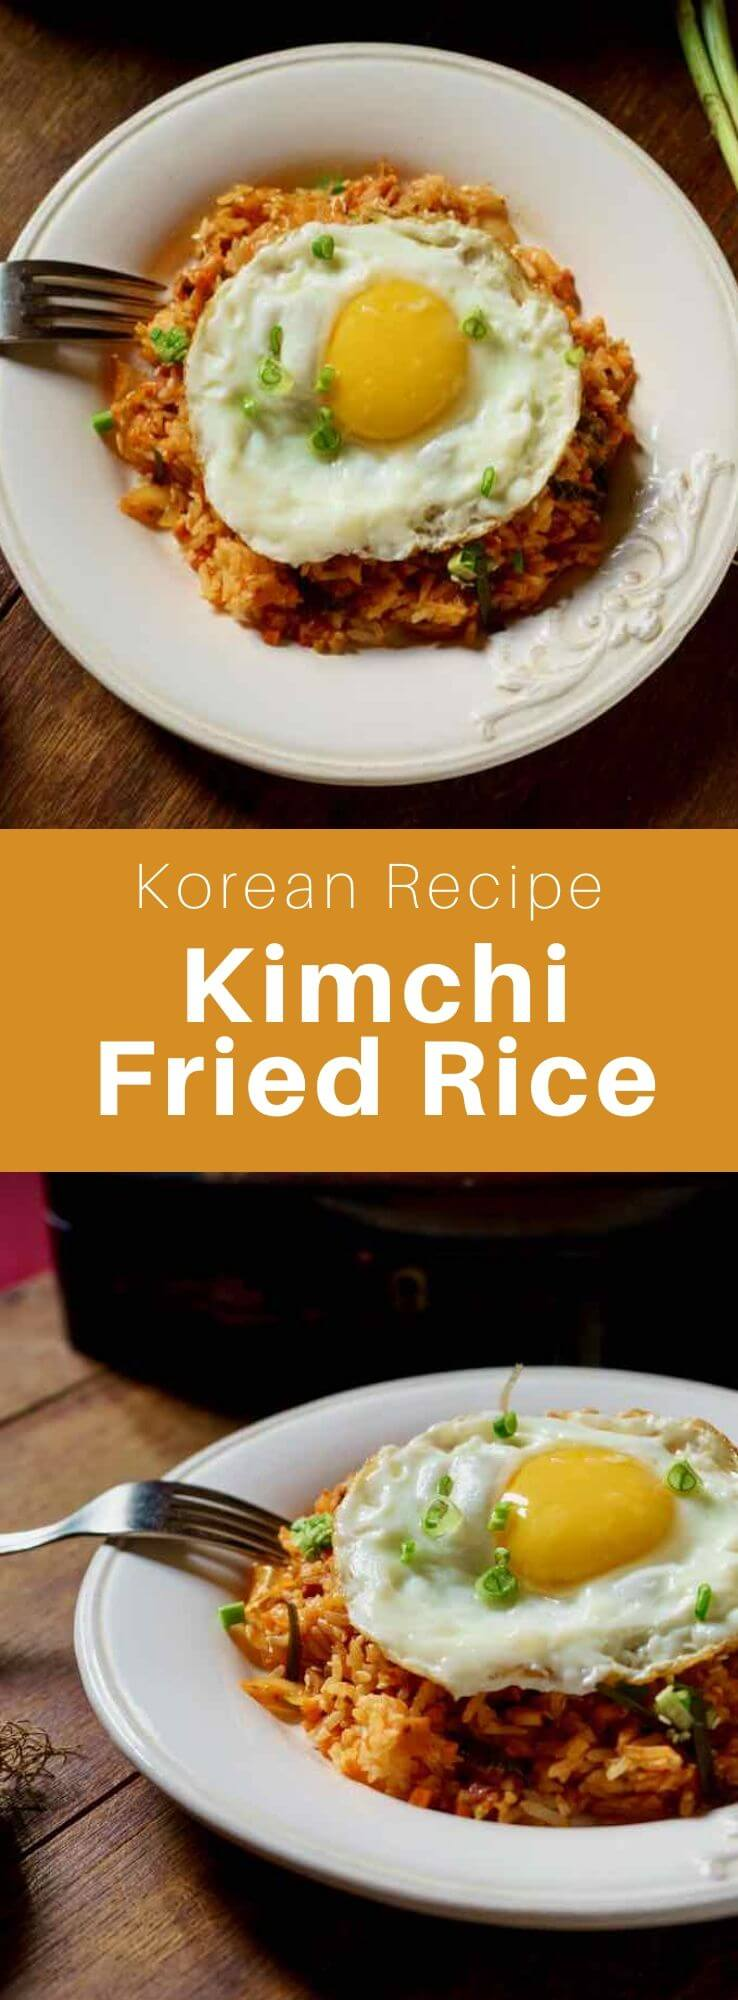 Kmchi fried rice or kimchi-bokkeum-bap (김치 볶음밥) is a variety of bokkeum-bap (fried rice) popular in Korea. Fried rice with kimchi is mainly composed of kimchi and rice, as well as other ingredients, such as diced vegetables or meat such as spam. #KoreanFood #KoreanRecipe #KoreanCuisine #WorldCuisine #196flavors